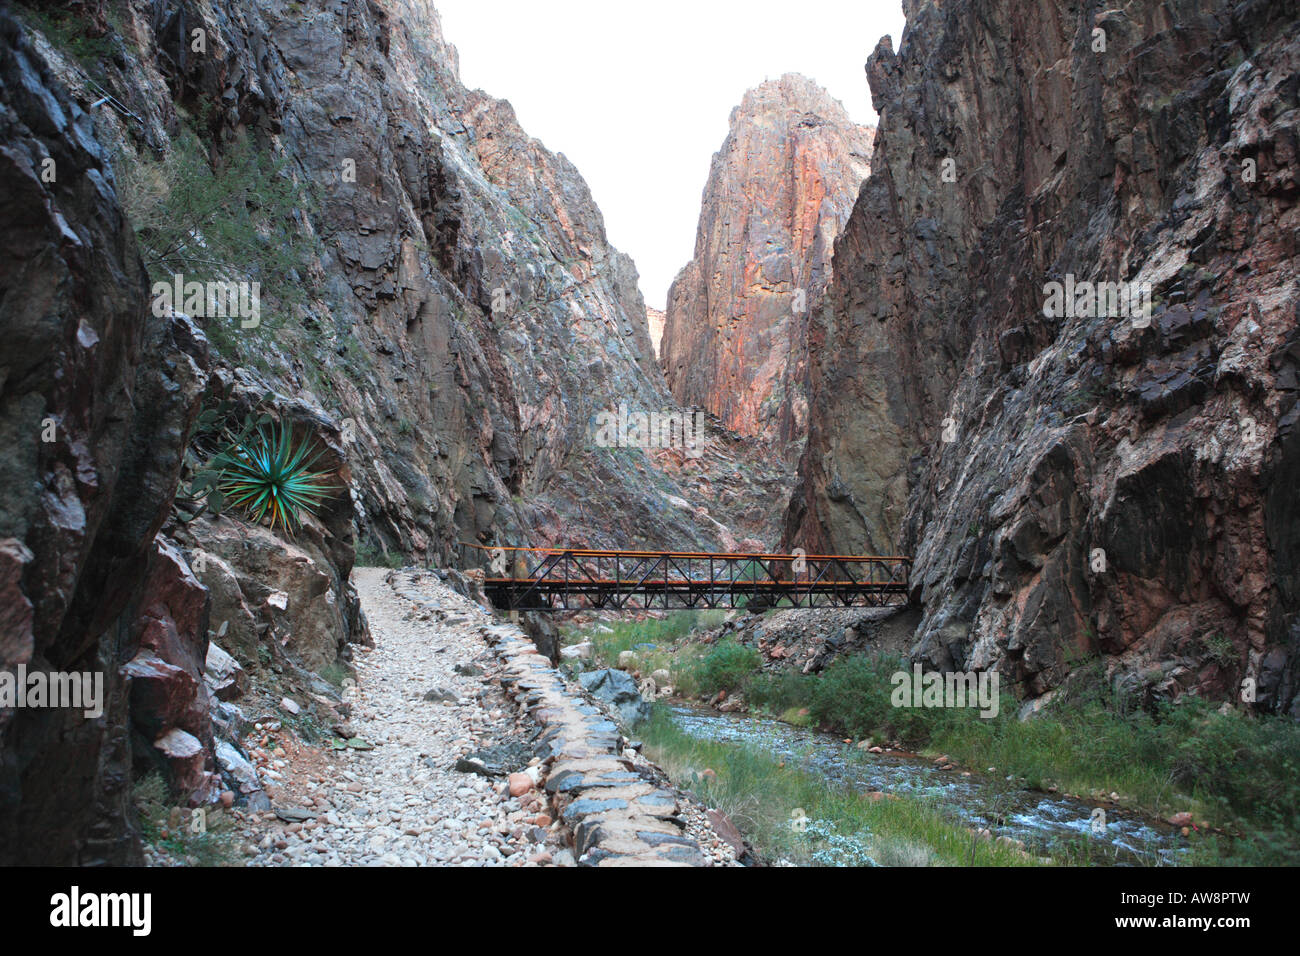 NORTH KAIBAB TRAIL IN THE INNER GORGE KNOWN AS THE BOX ABOVE PHANTOM RANCH IN GRAND CANYON NATIONAL PARK ARIZONA Stock Photo